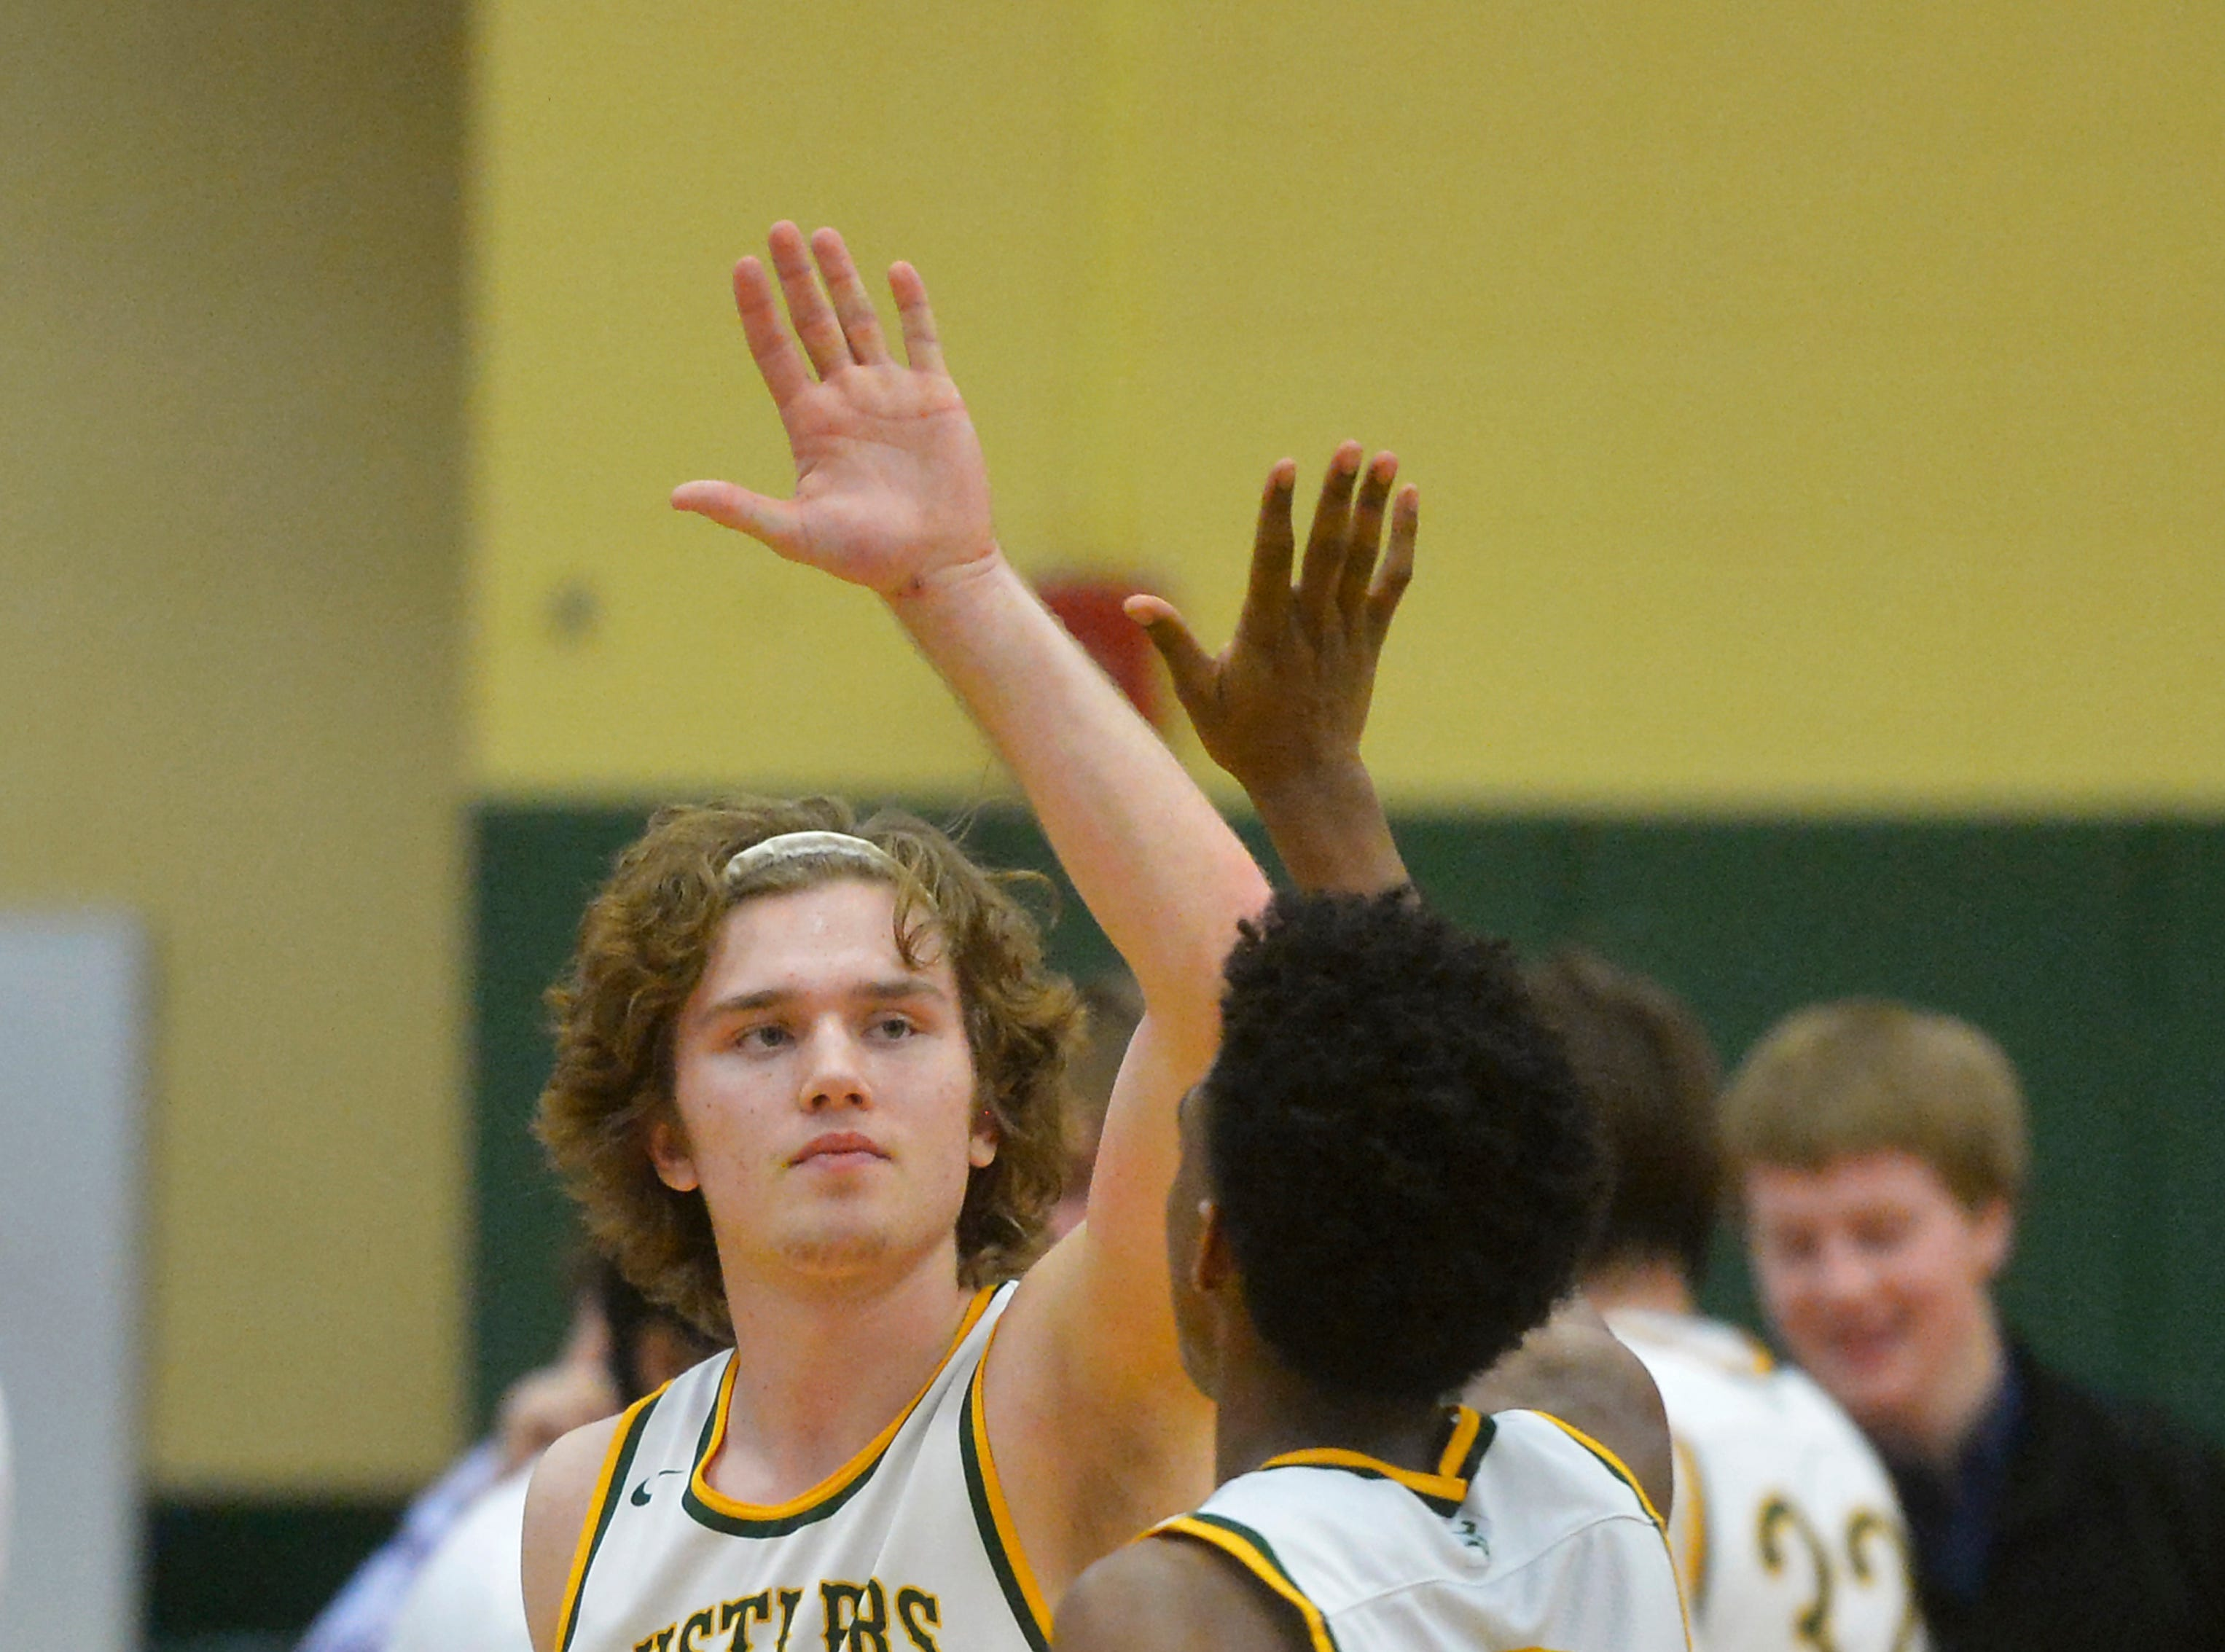 CMR's Keegan Barnes (22) and Caleb Curringtion slap a high five on the way to their bench during a timeout in Thursday's crosstown basketball game in the CMR Fieldhouse.